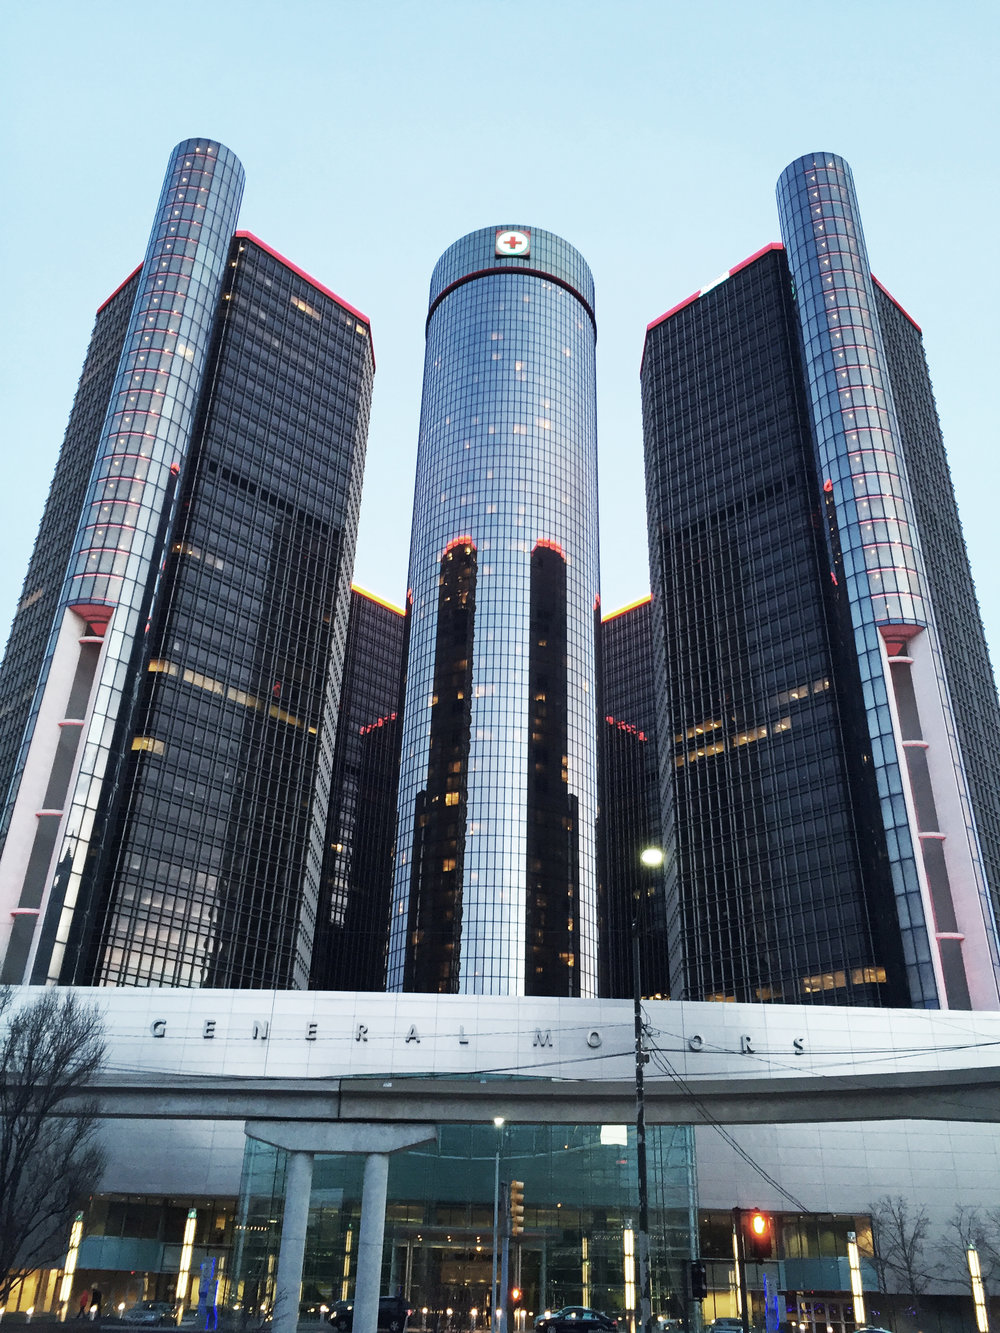 The General Motors' Renaissance Center had the scariest elevators that I've ever ridden on! They were glass elevators on the exterior of the building, so you could see just how high up you were traveling. It was terrifying!